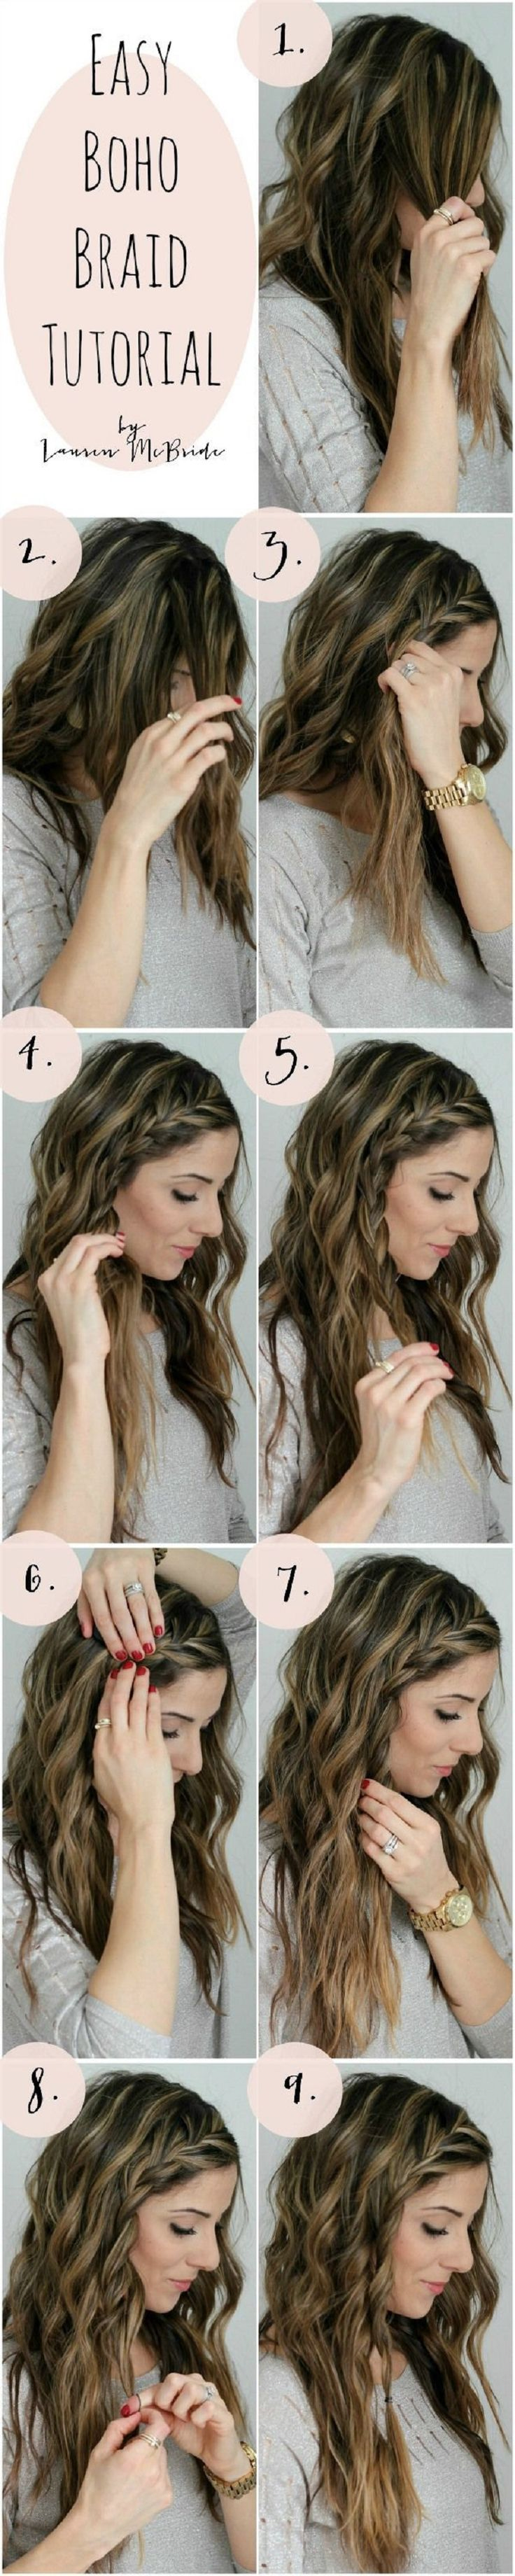 balenciaga giant money boho braid Tutorial   16 Hippy DIY Tutorials for All Boho Chic Princesses   GleamItUp